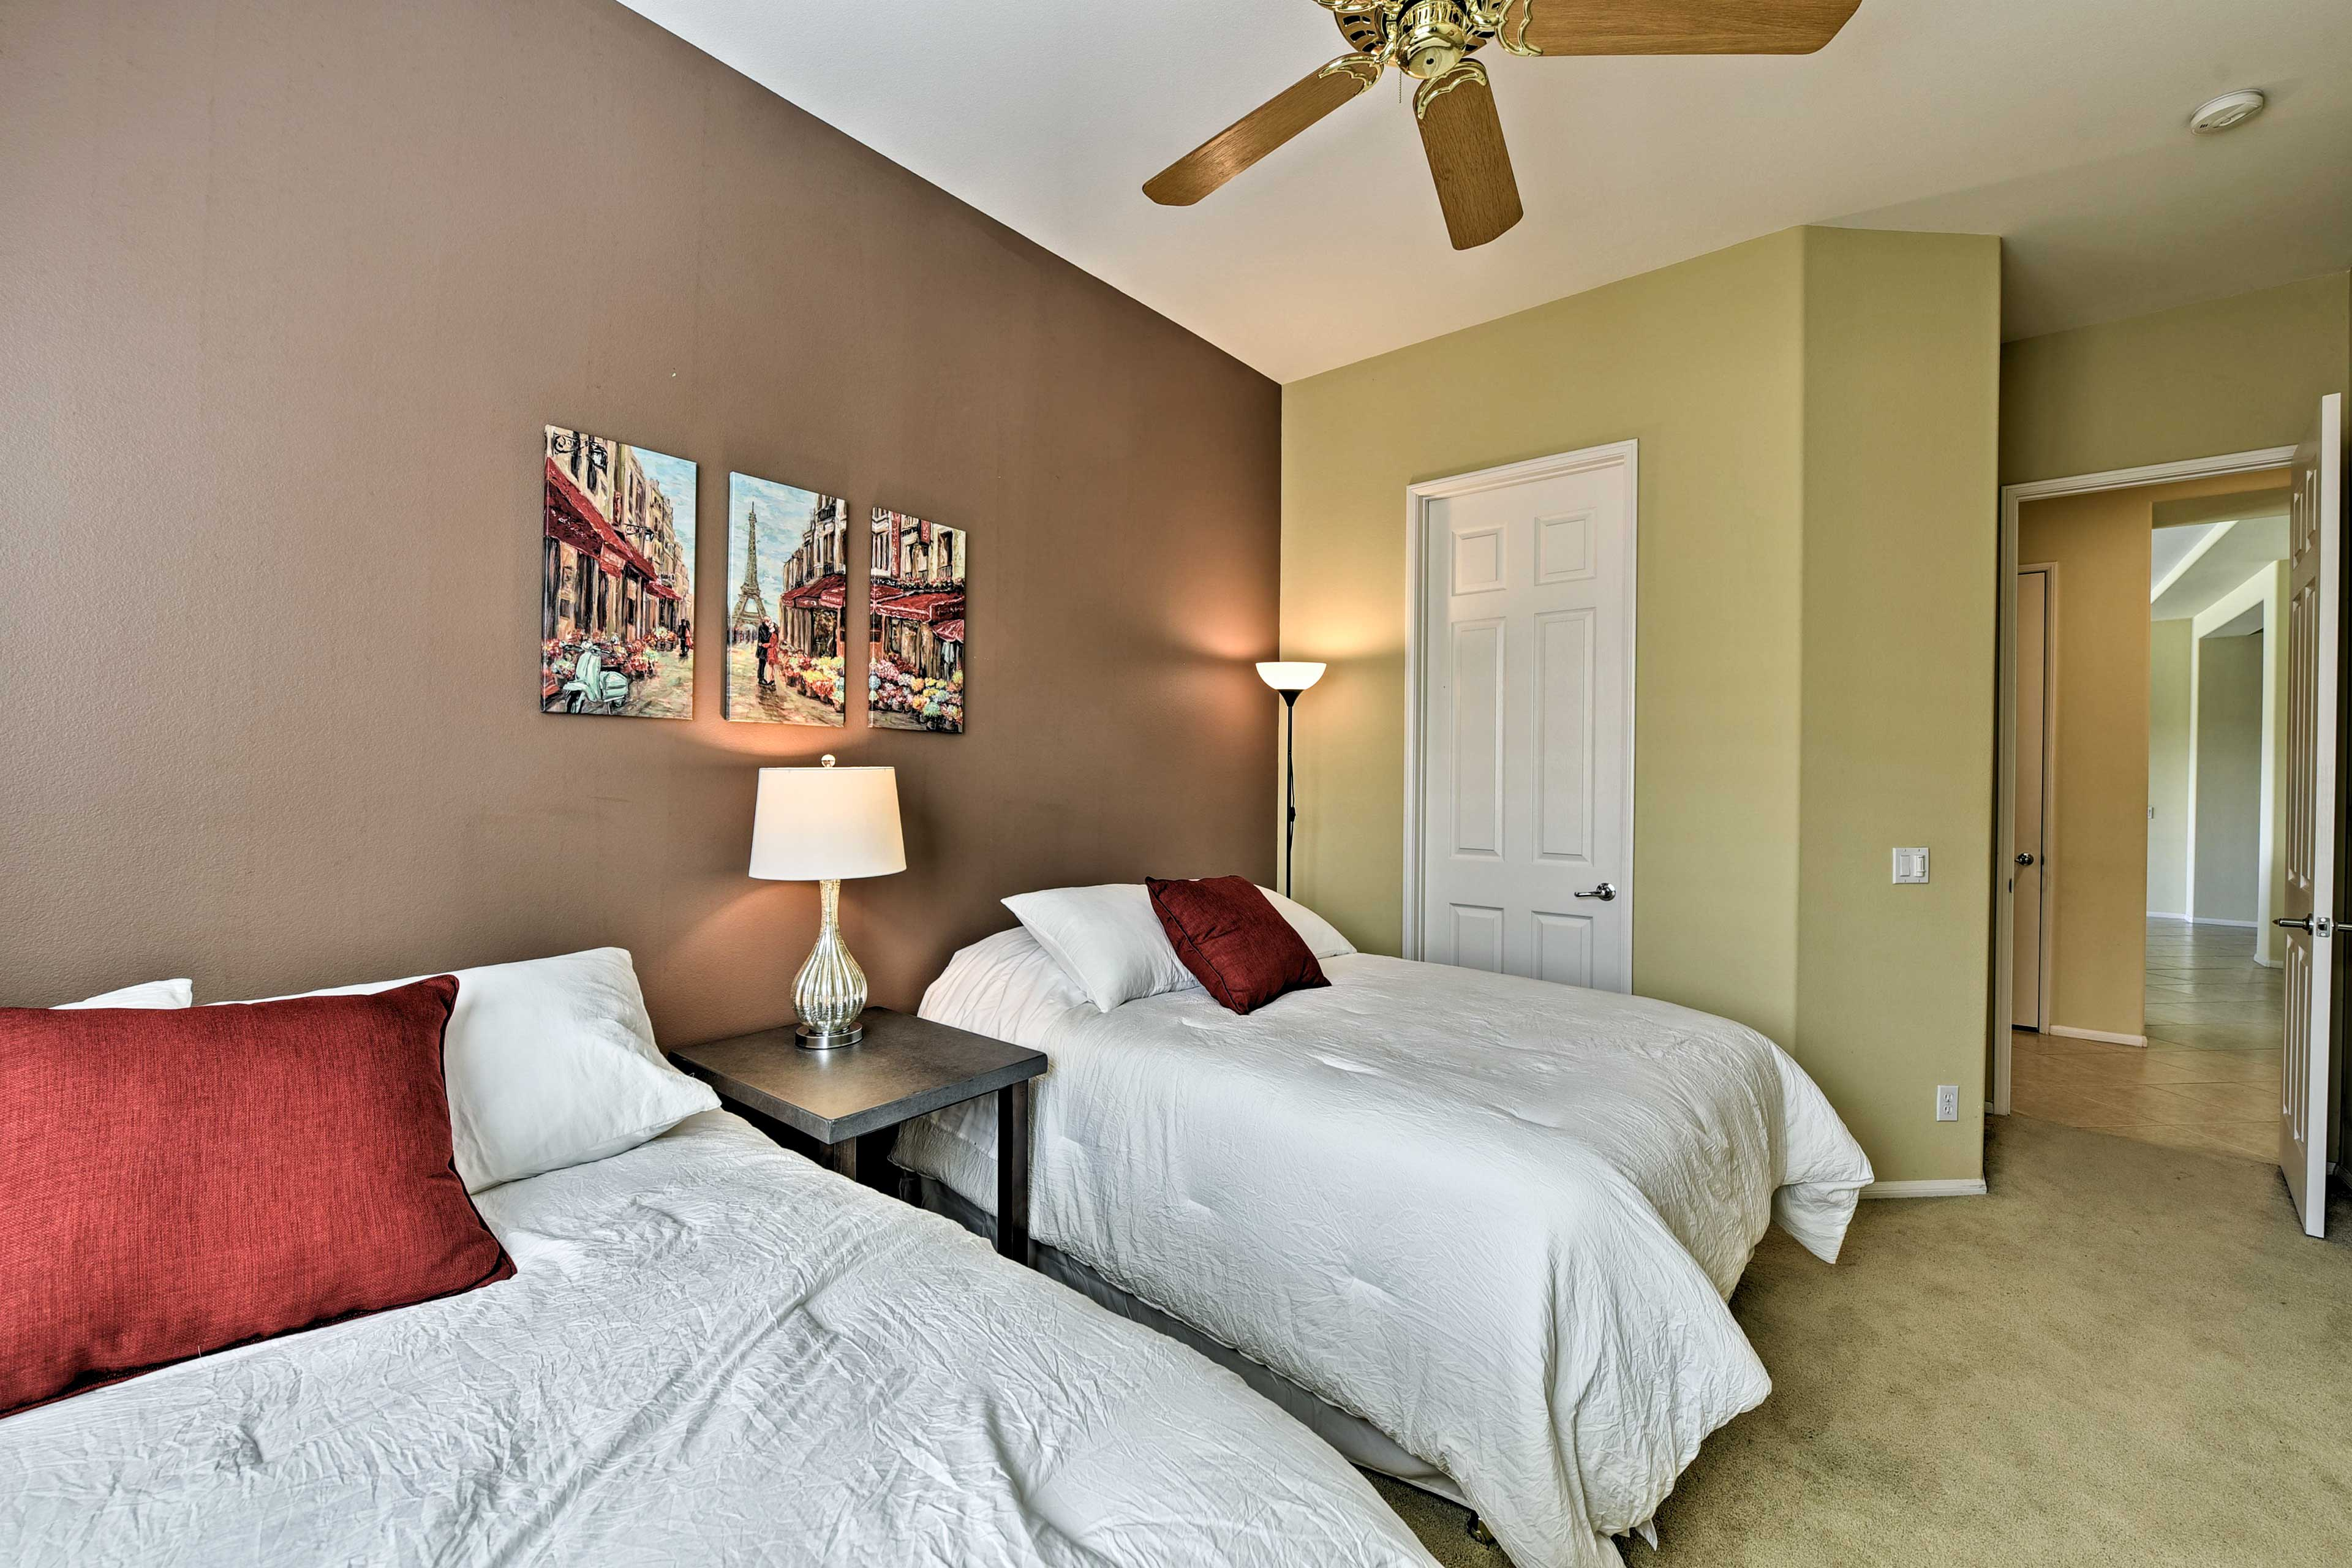 You'll love coming home to this warm and cozy room.